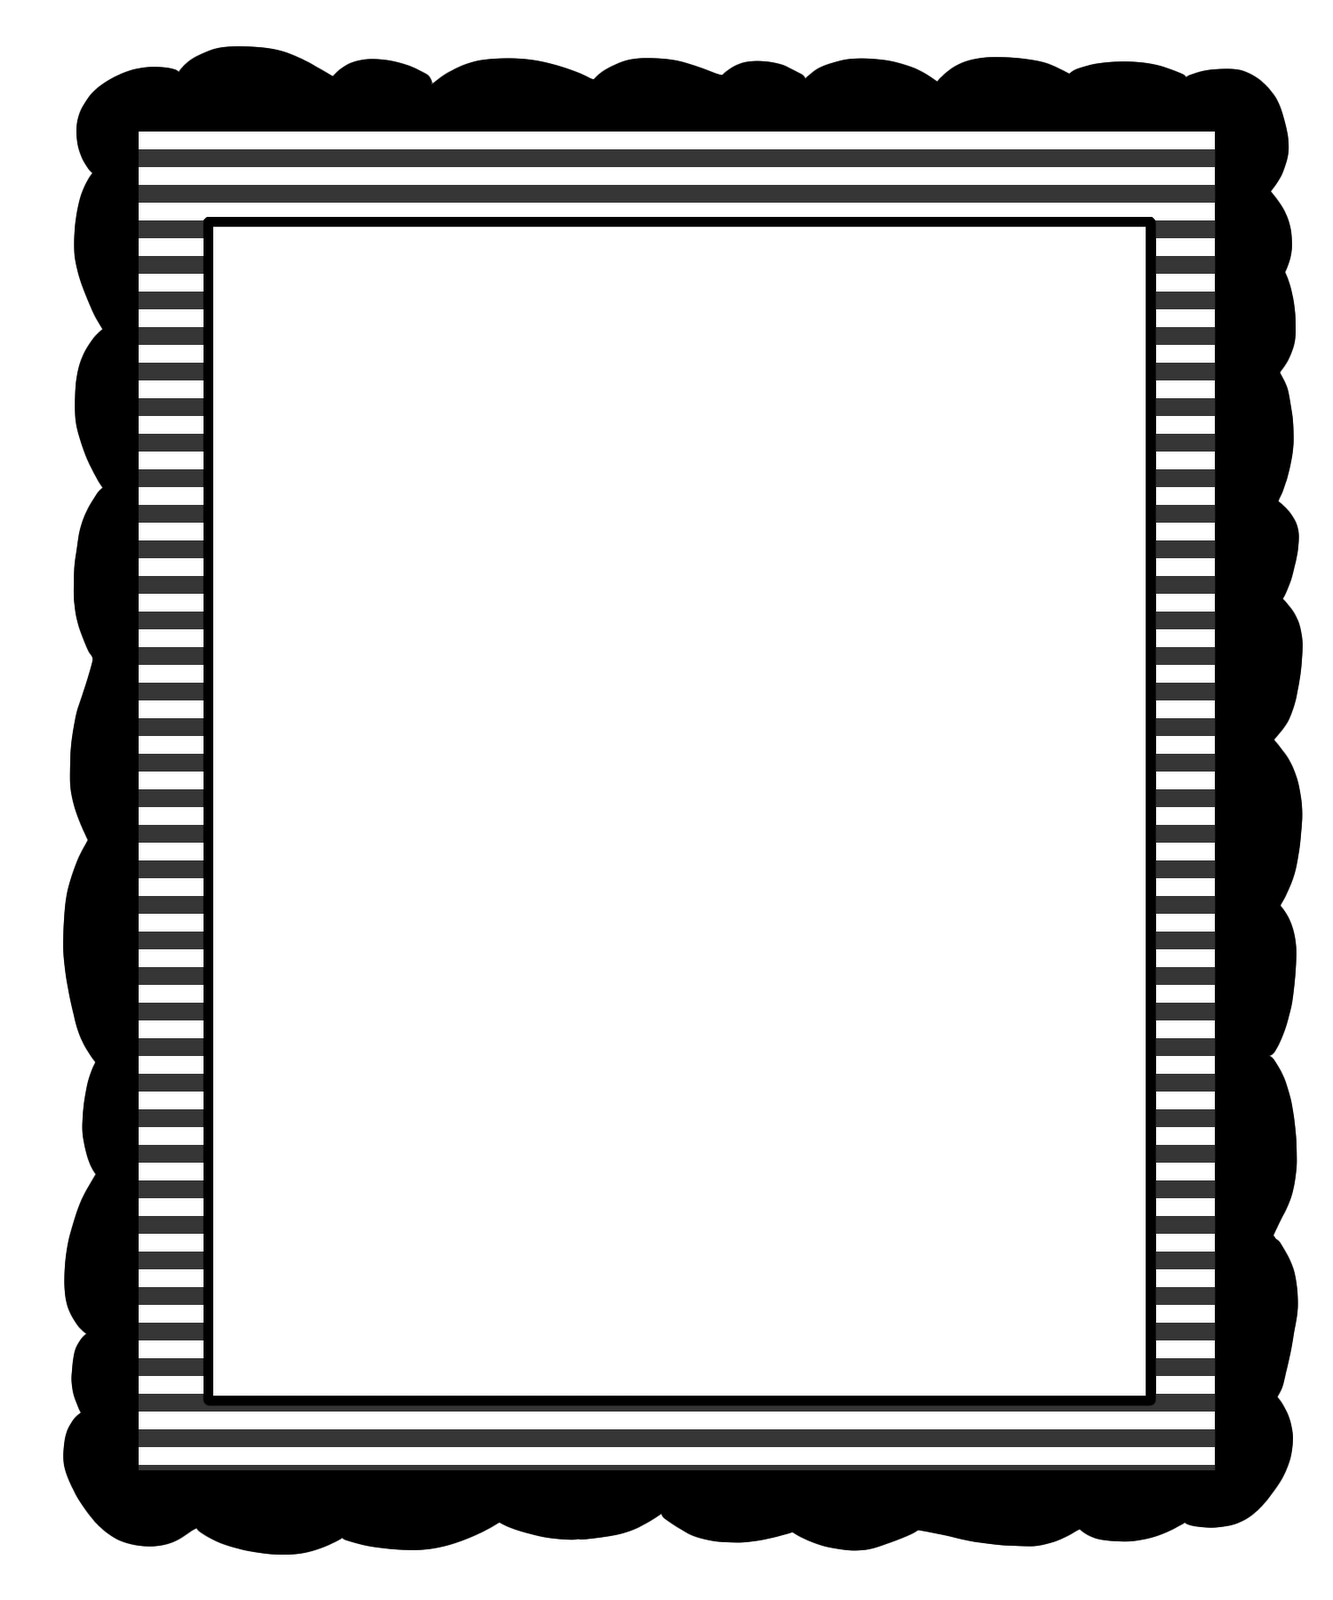 graphic royalty free library Borders clipart teacher. Ruffle border